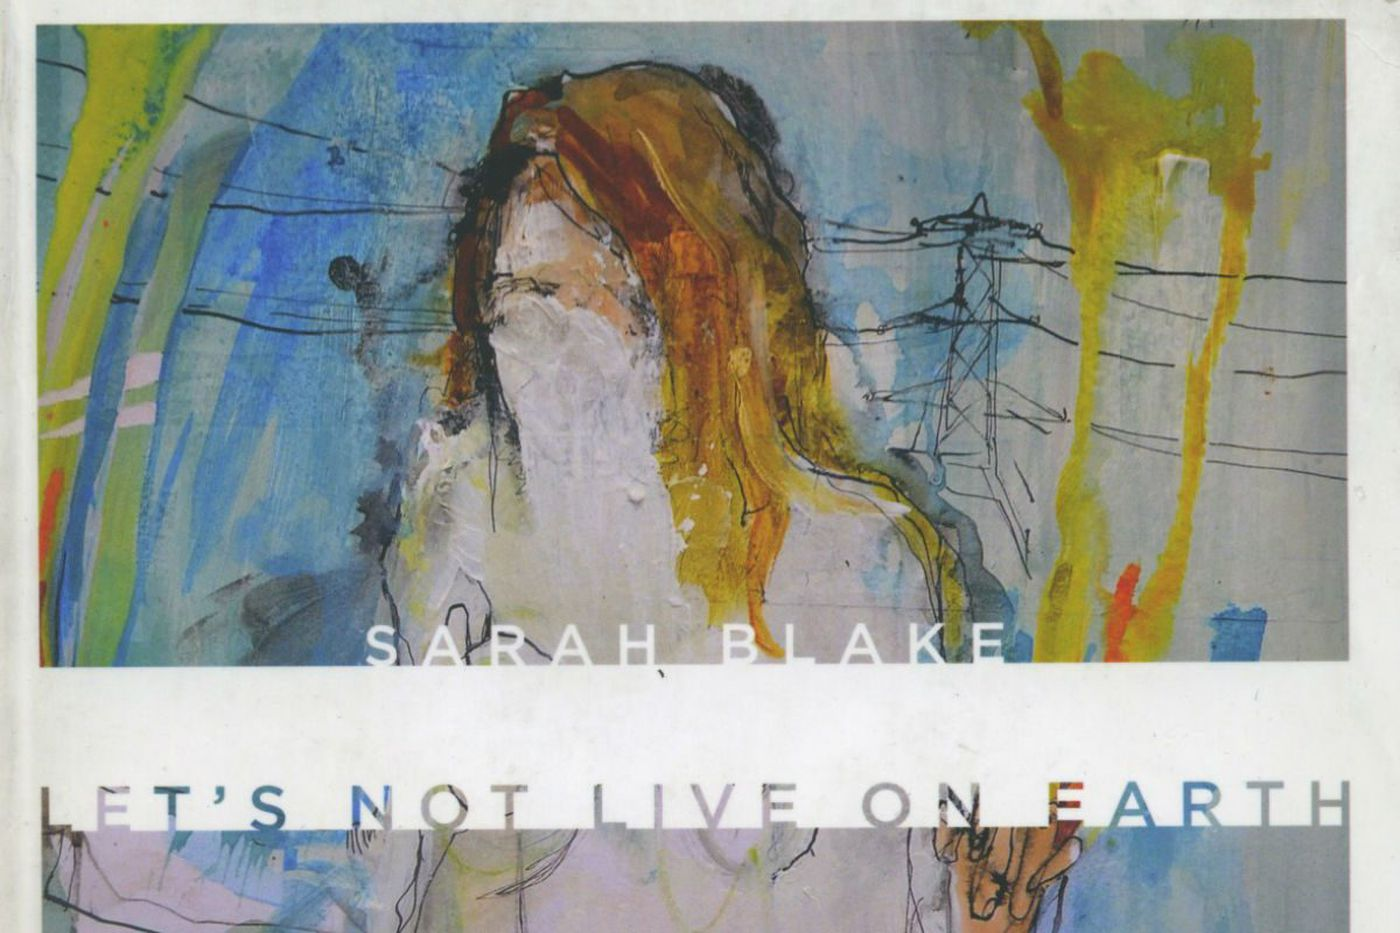 Local poet Sarah Blake's 'Let's Not Live on Earth': Zombies, monsters, sci-fi, and big messages, without preaching